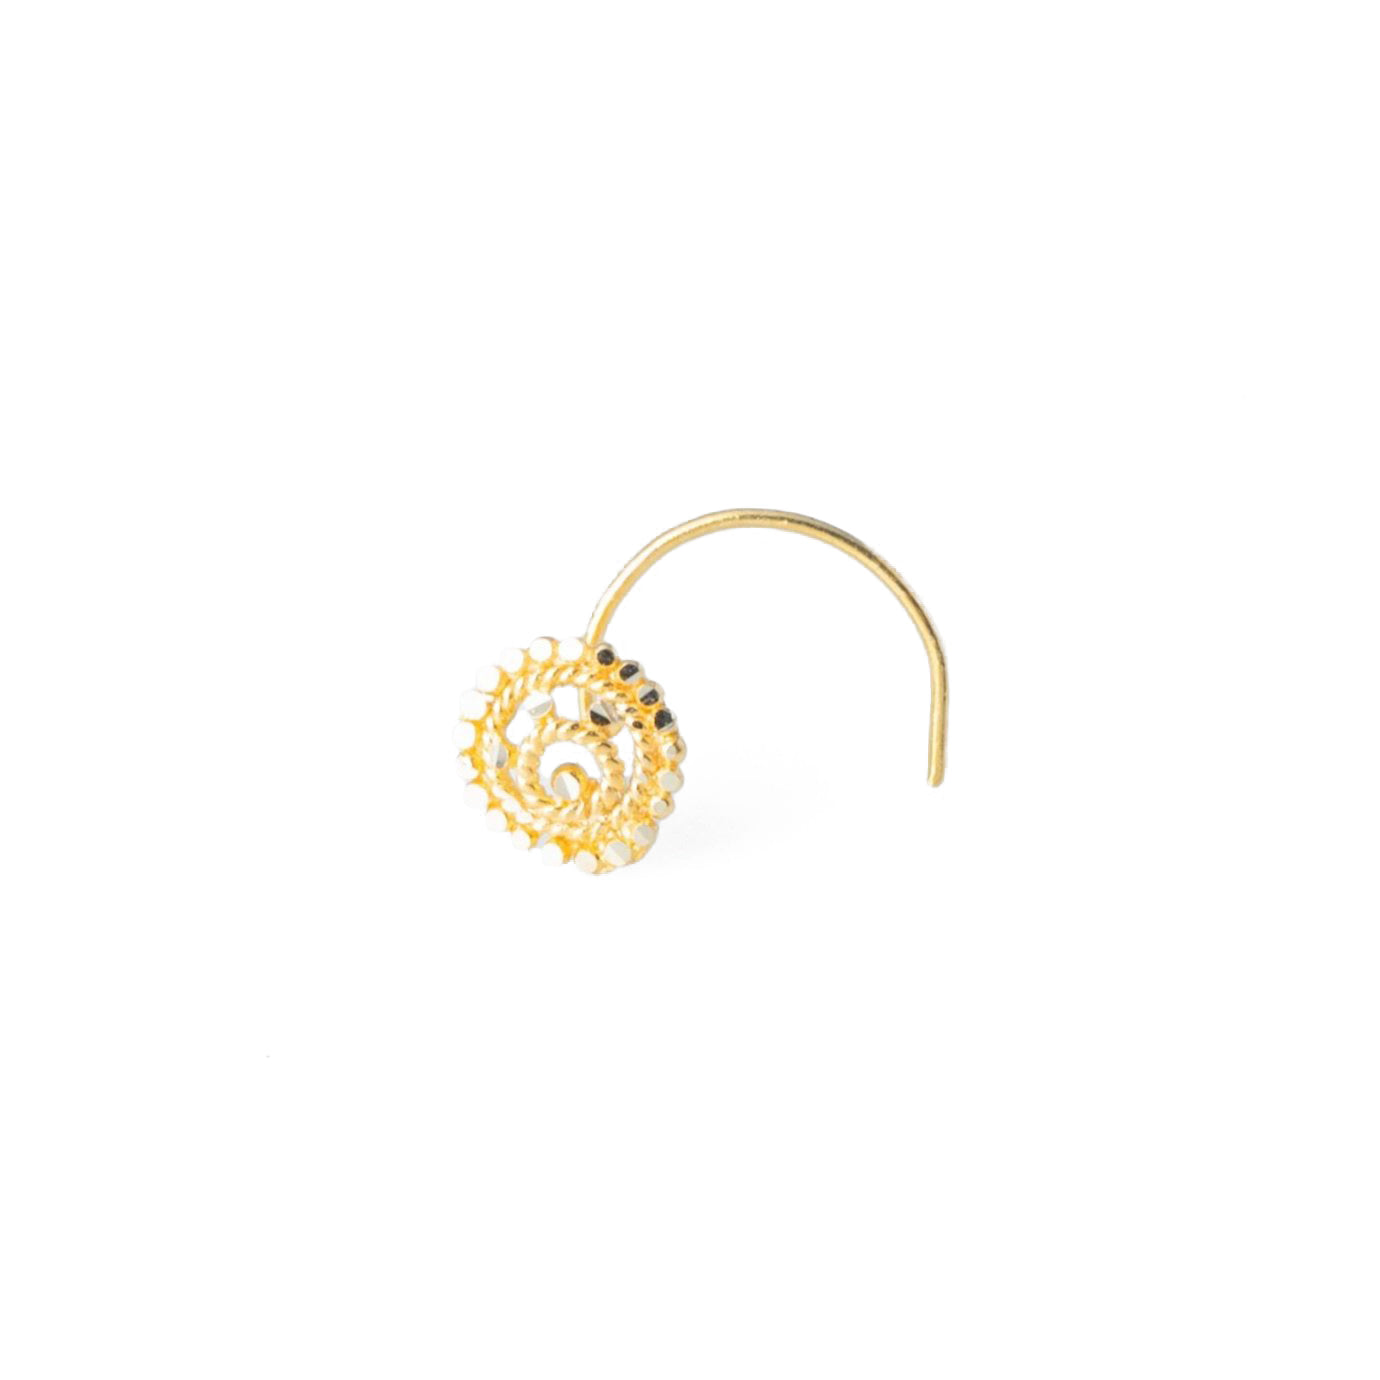 18ct Yellow Gold Wire Coil Back Nose Stud with Filigree Design NIP-5-130c